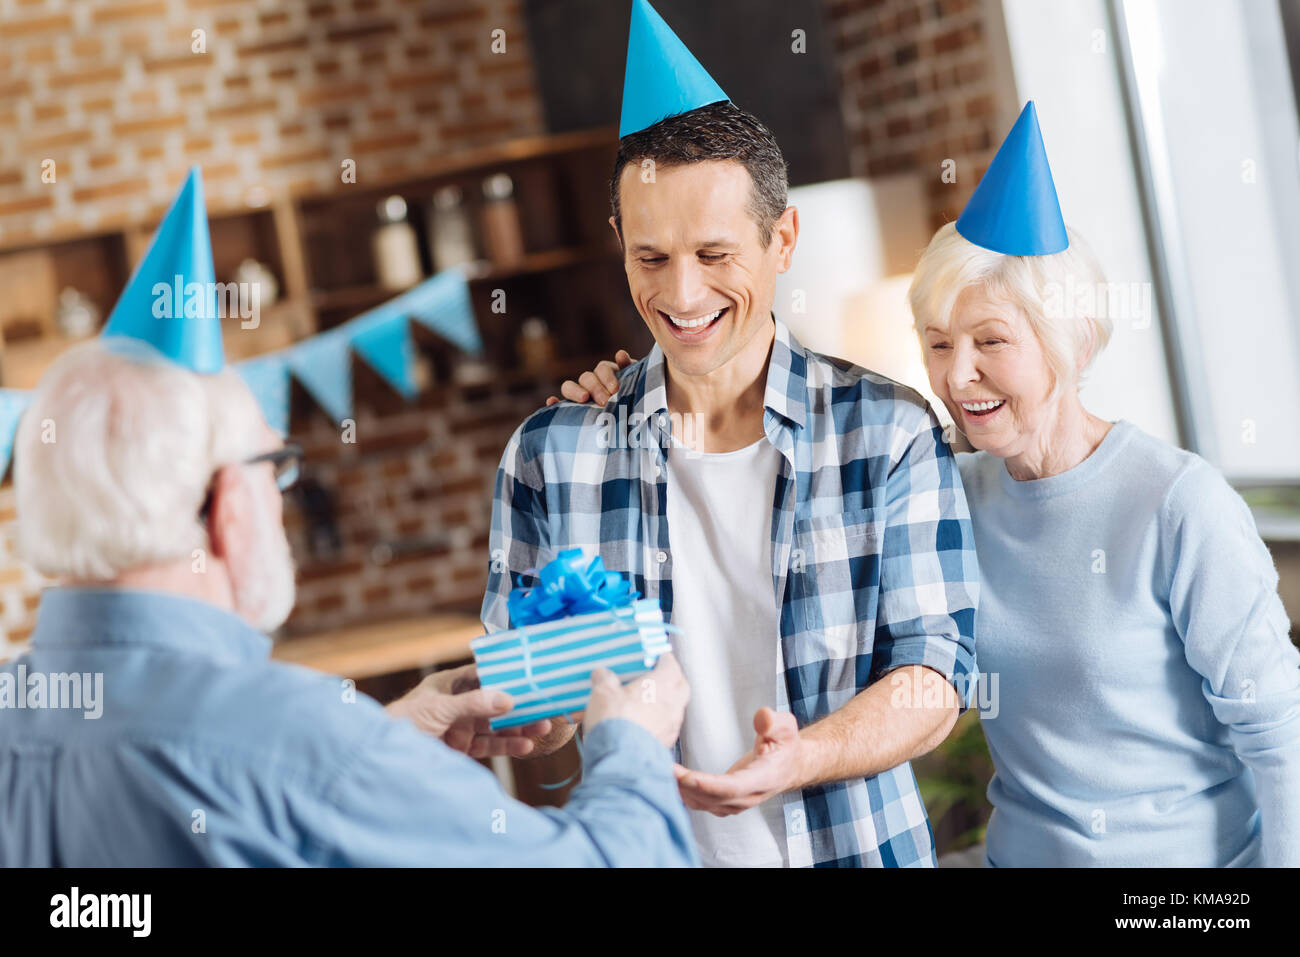 Elderly Man Giving A Birthday Gift To His Adult Son Stock Photo